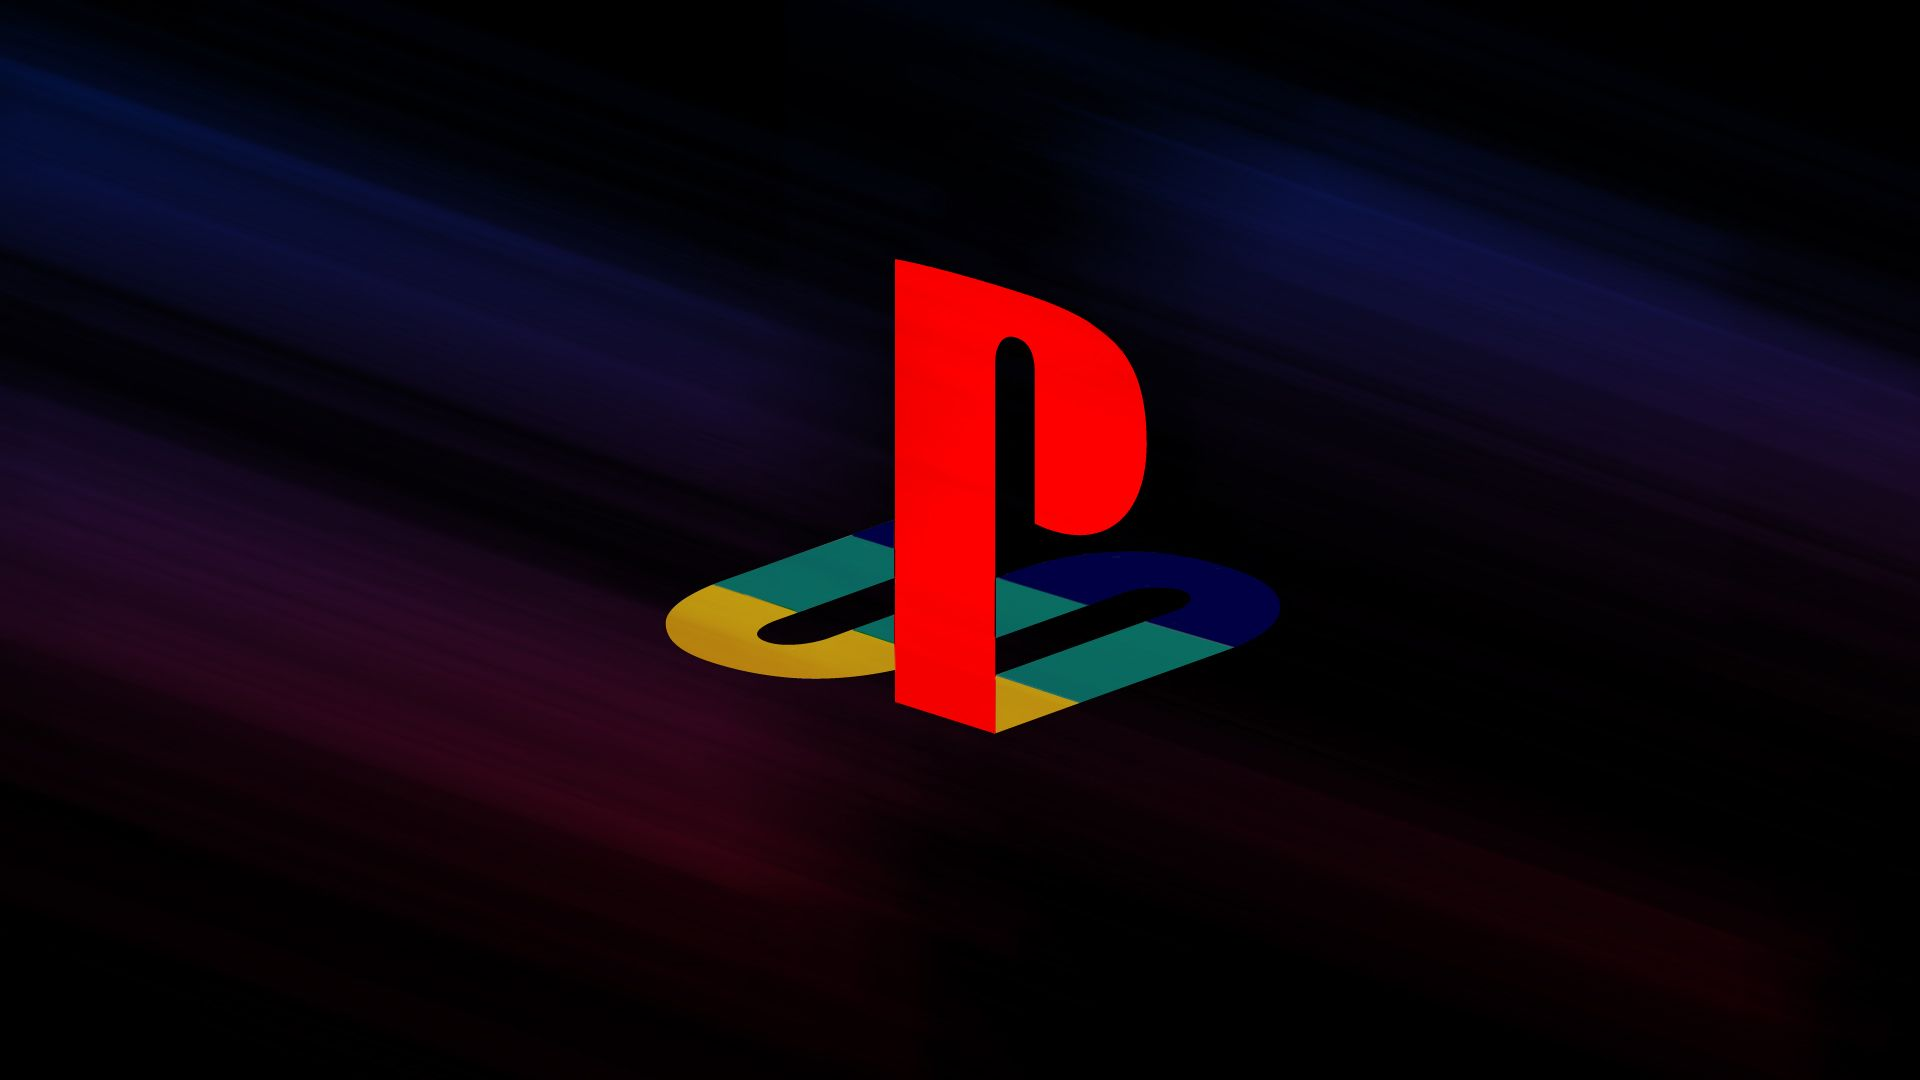 Ps3 Wallpapers Top Free Ps3 Backgrounds Wallpaperaccess